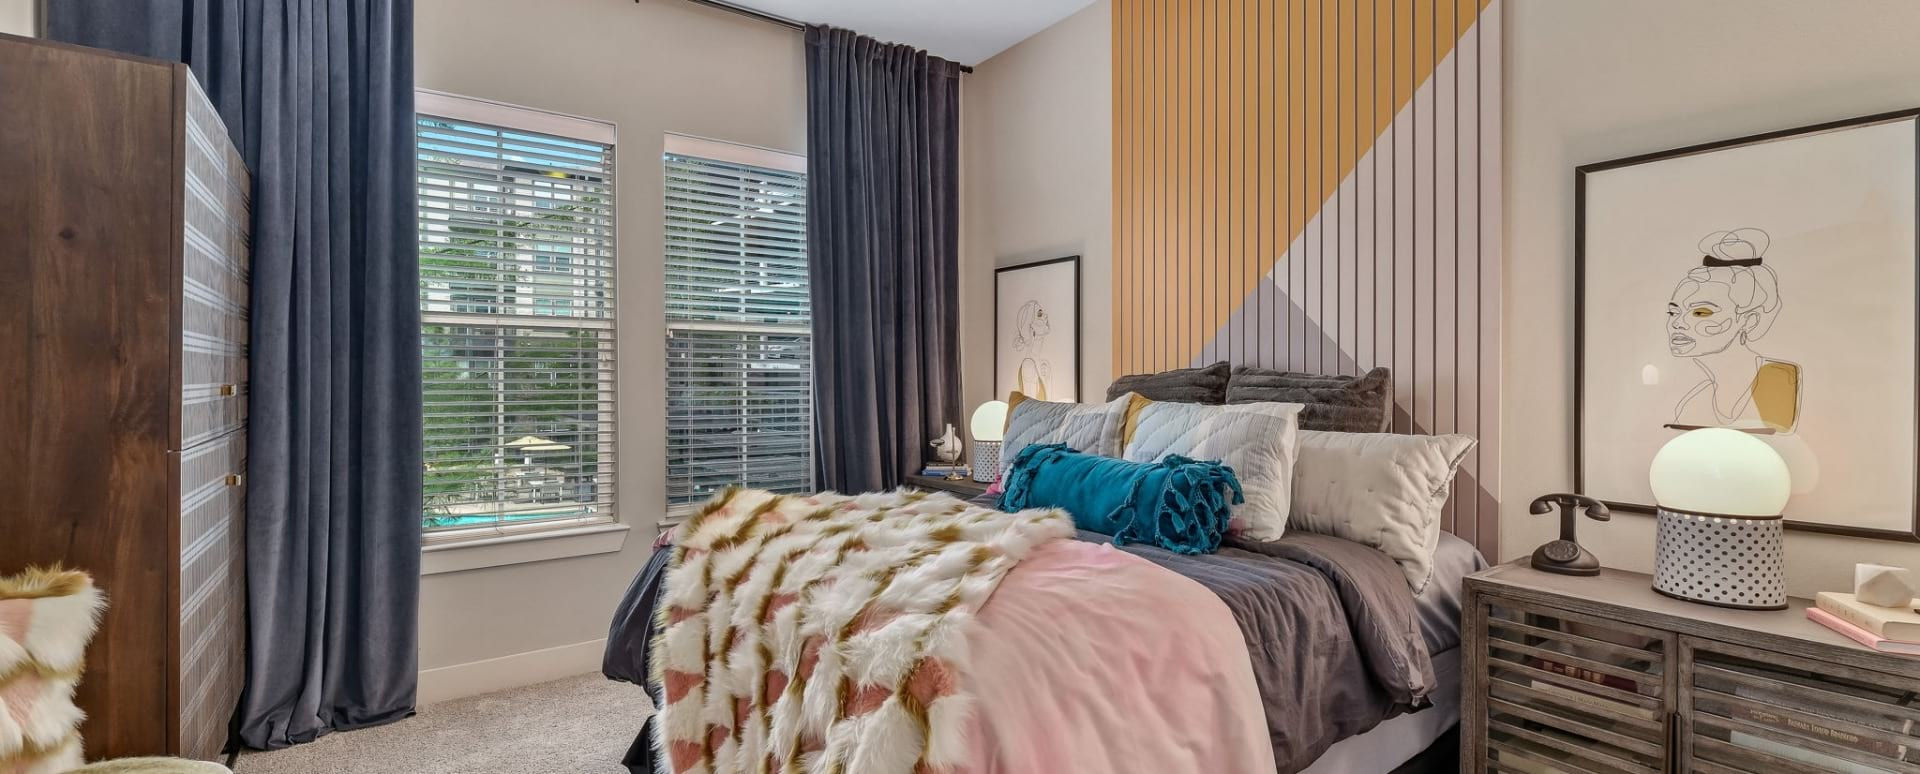 Spacious one bedroom apartments for rent in Oak Lawn